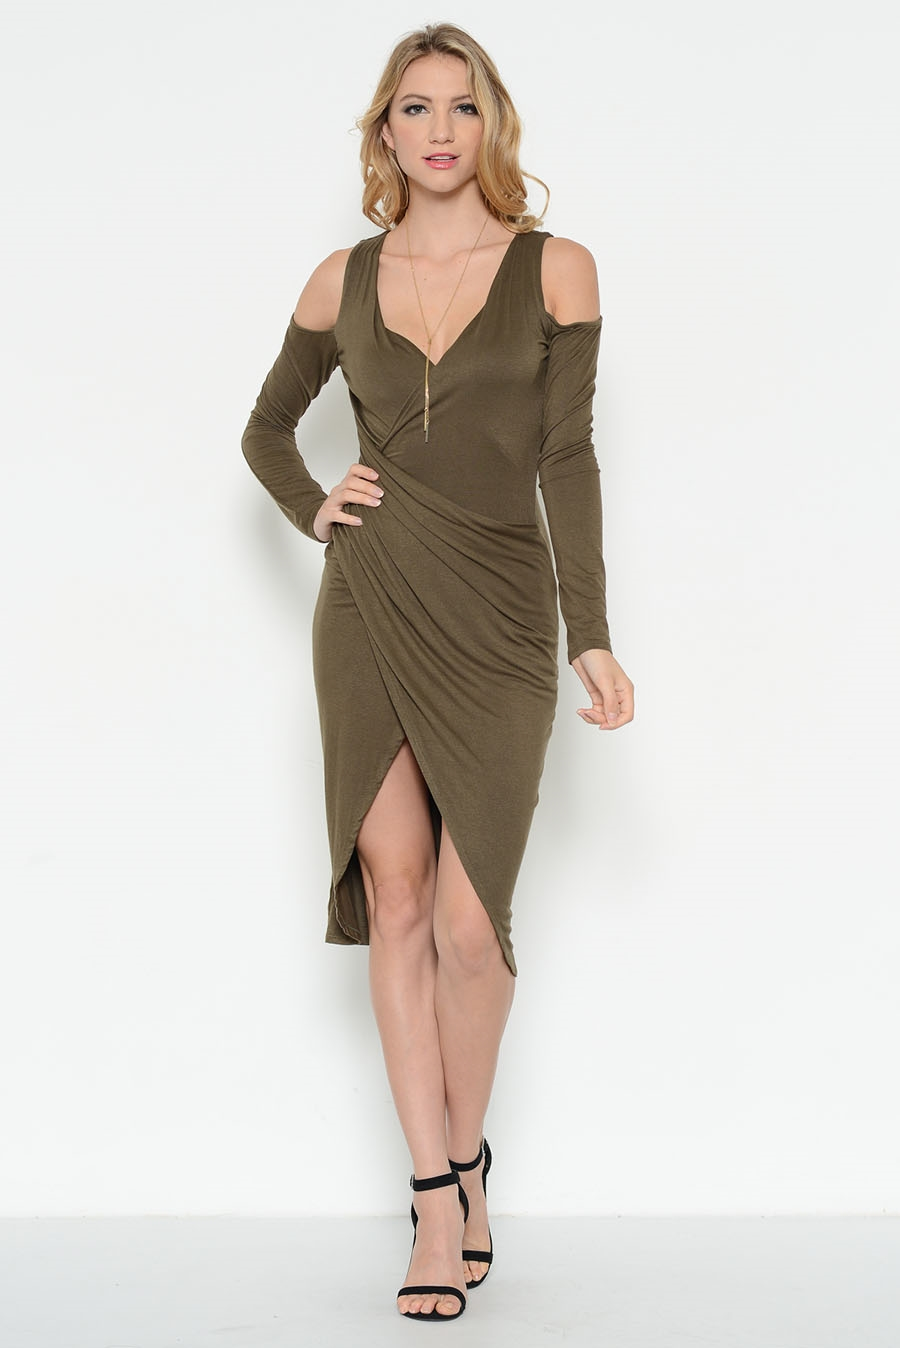 COLD SHOULDER OVERLAP DRESS - orangeshine.com